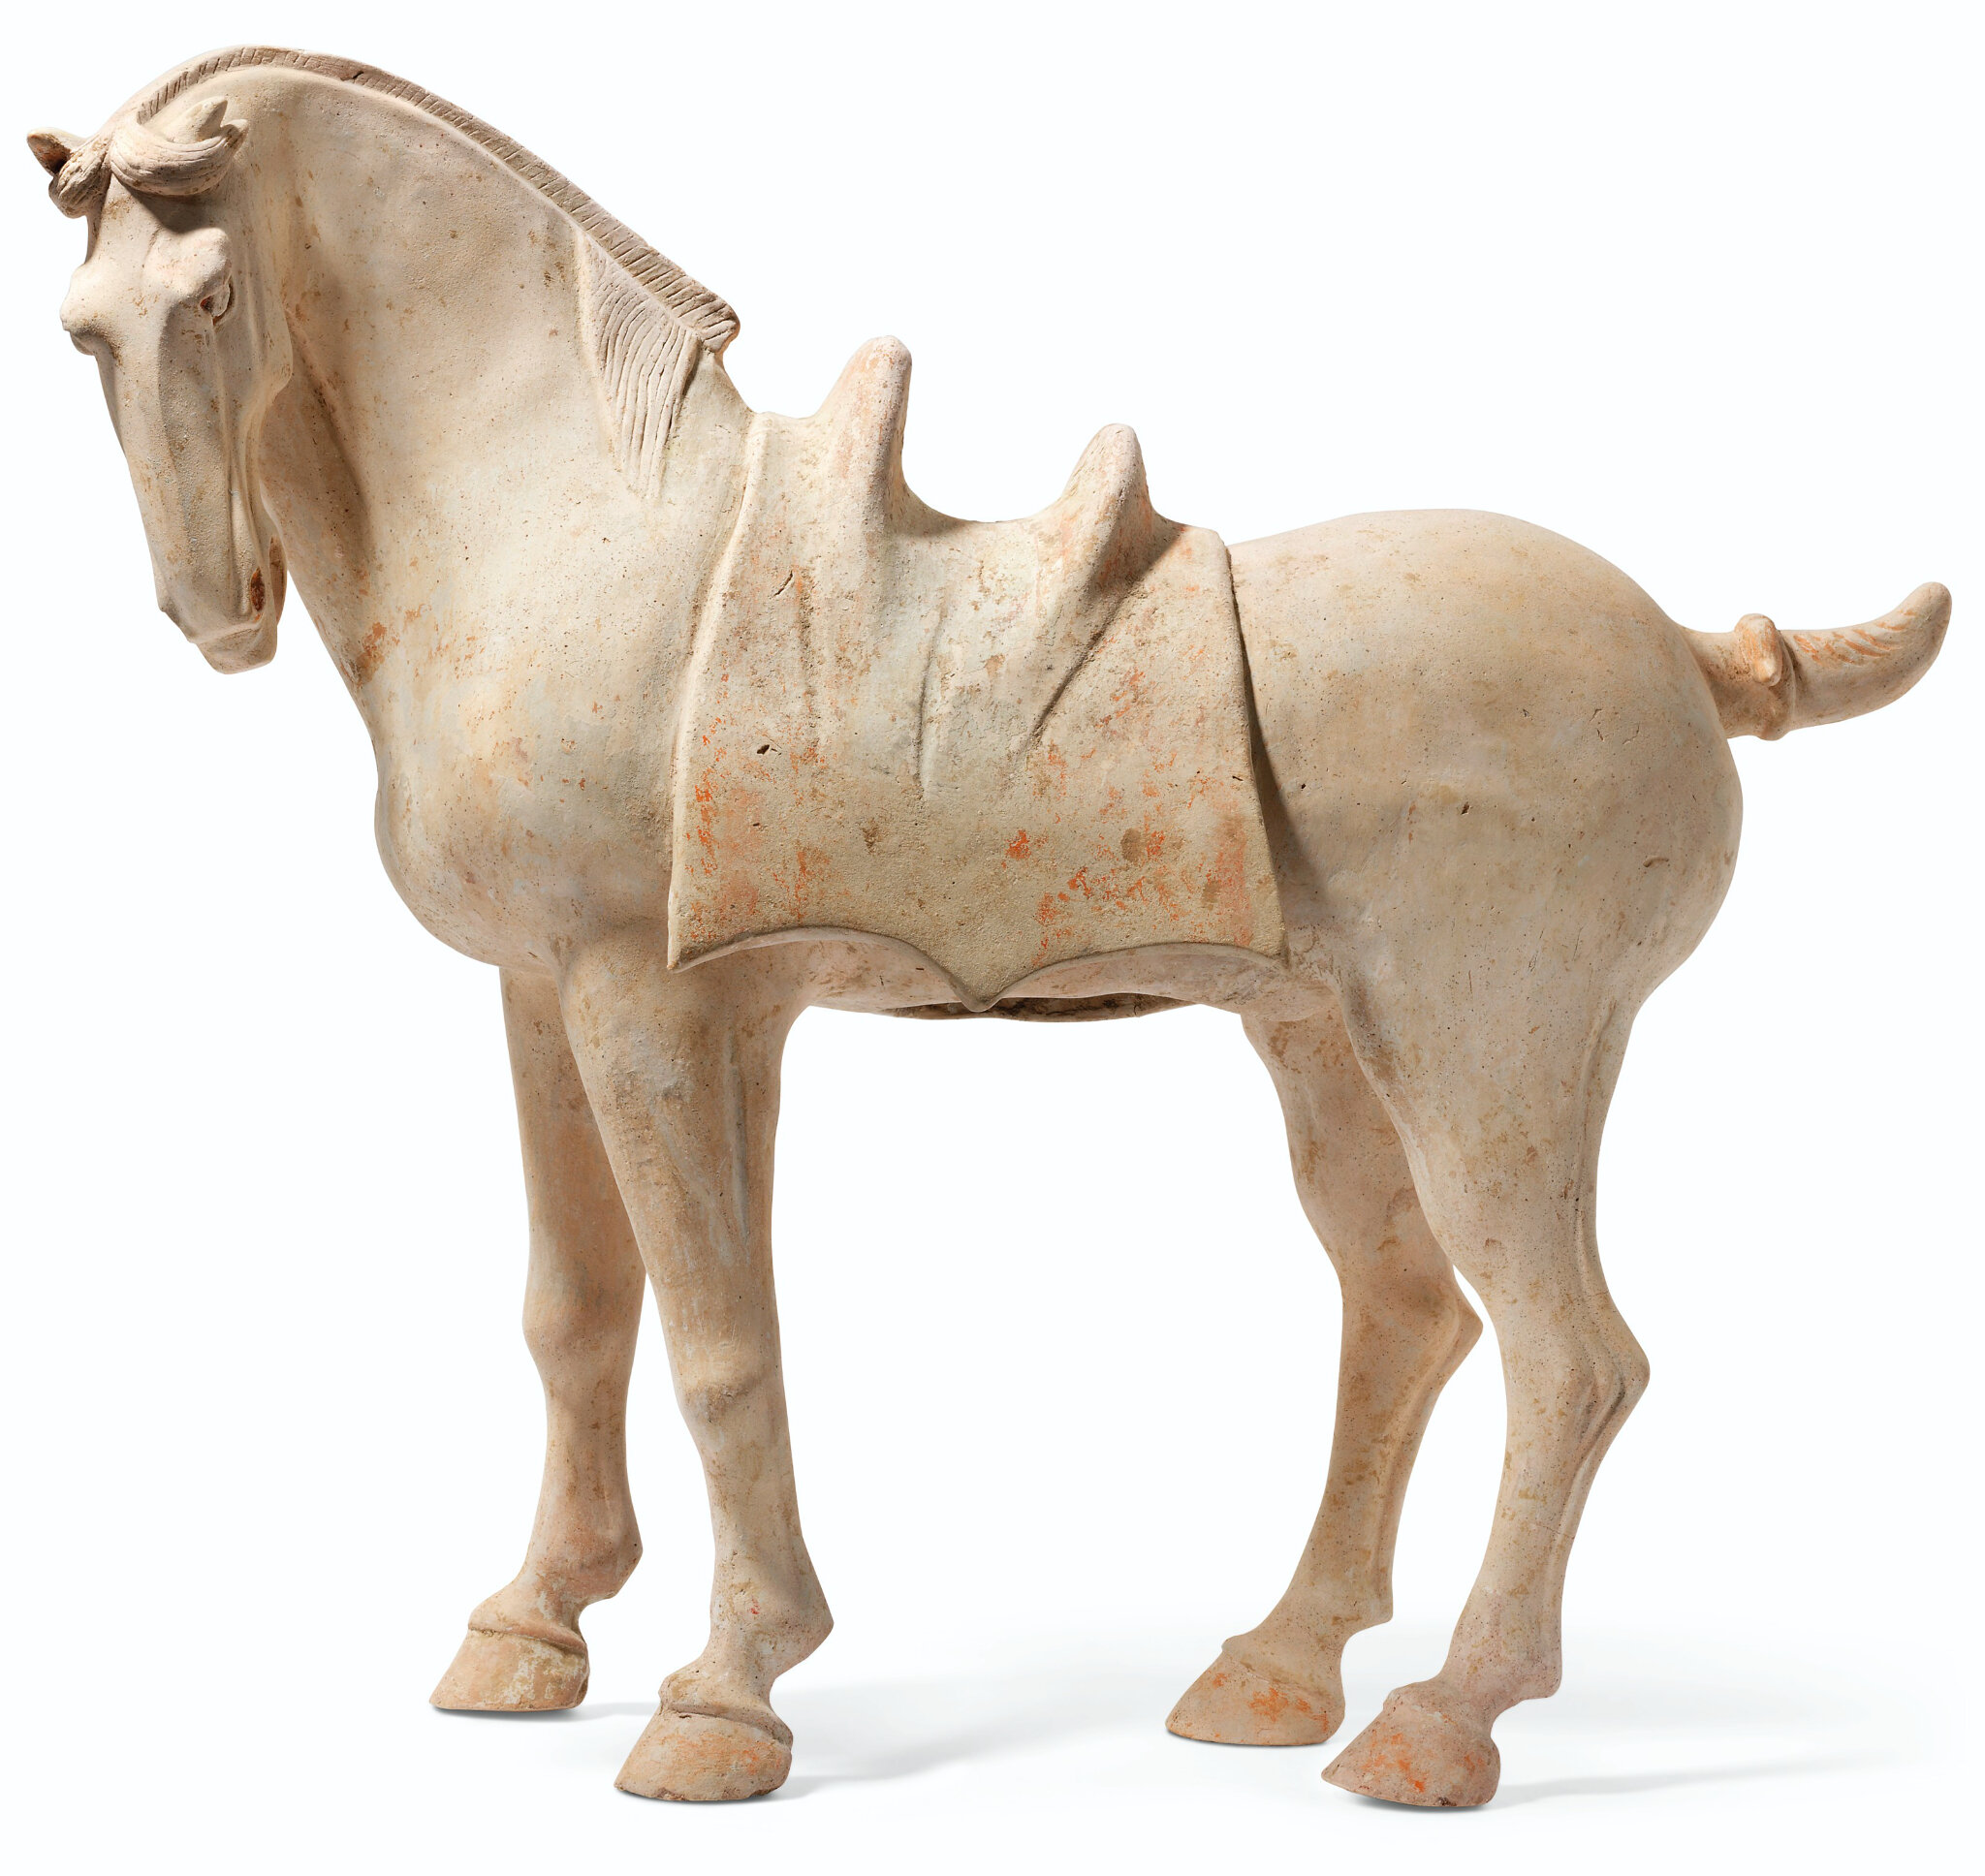 Cheval en terre cuite polychrome, Chine, dynastie Tang (618-907)